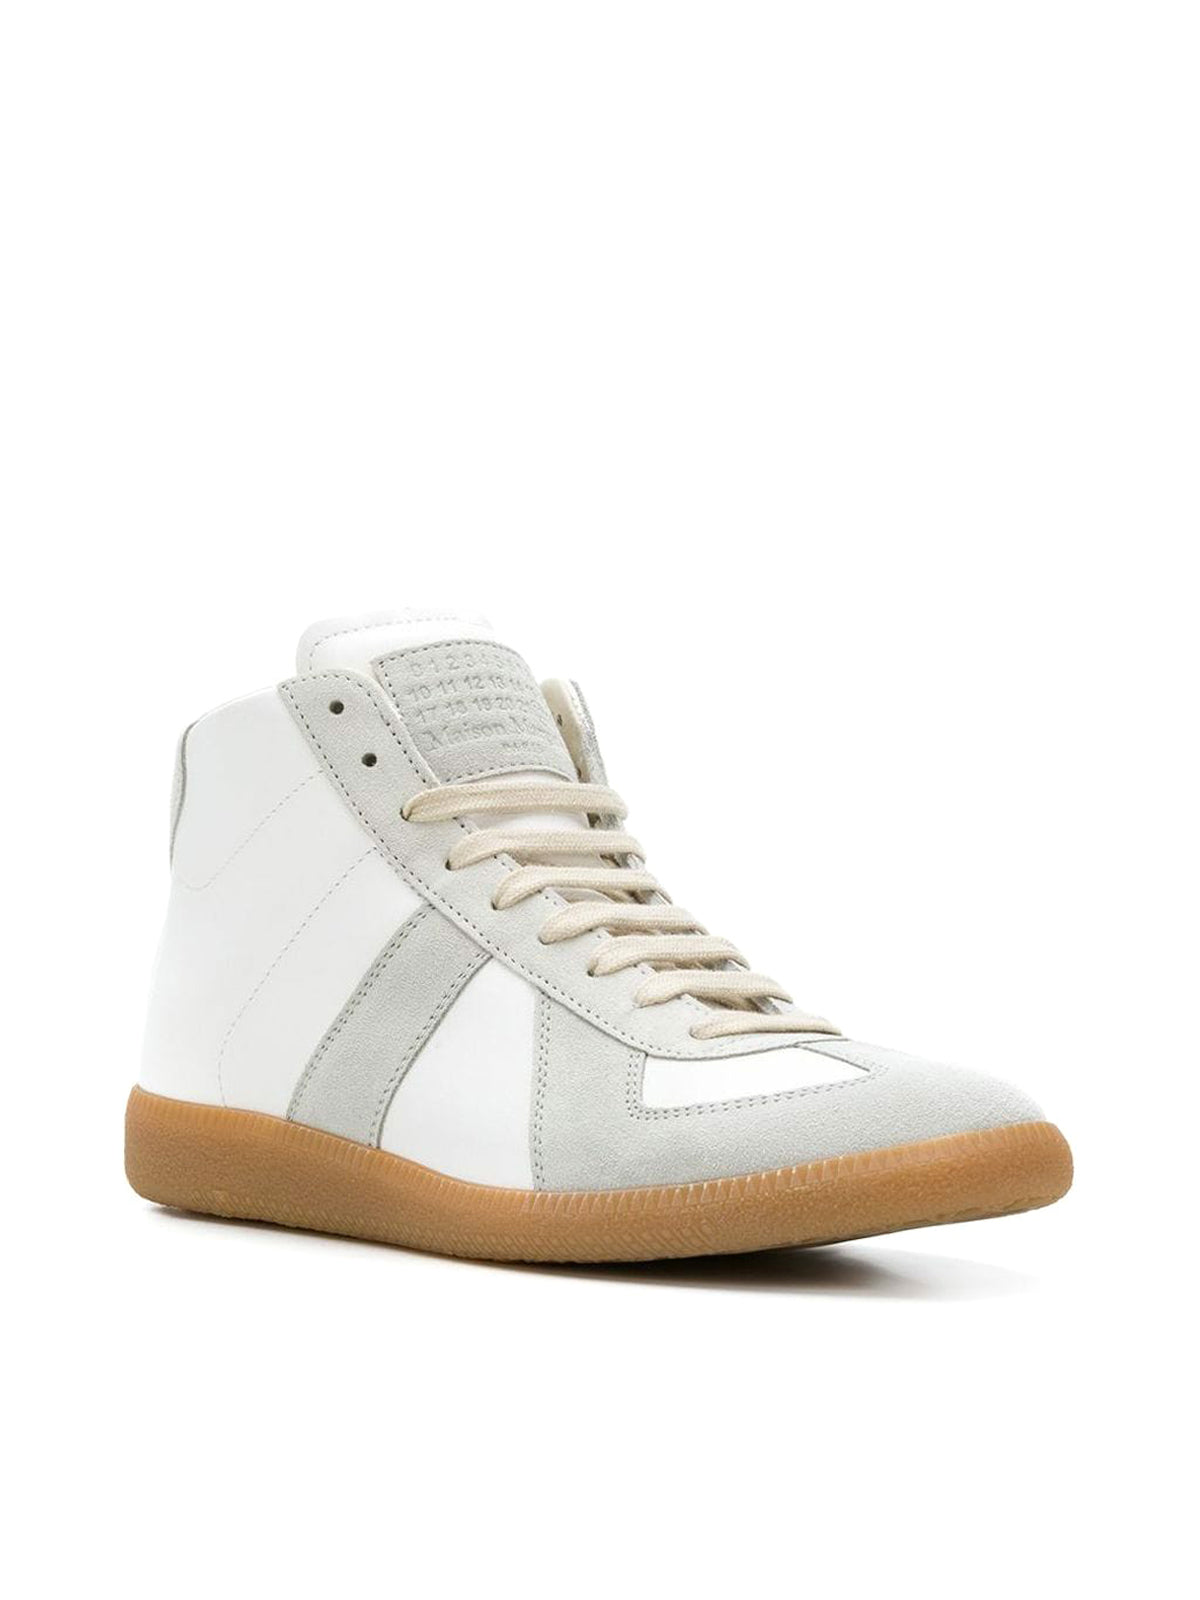 Sneakers alte Replica